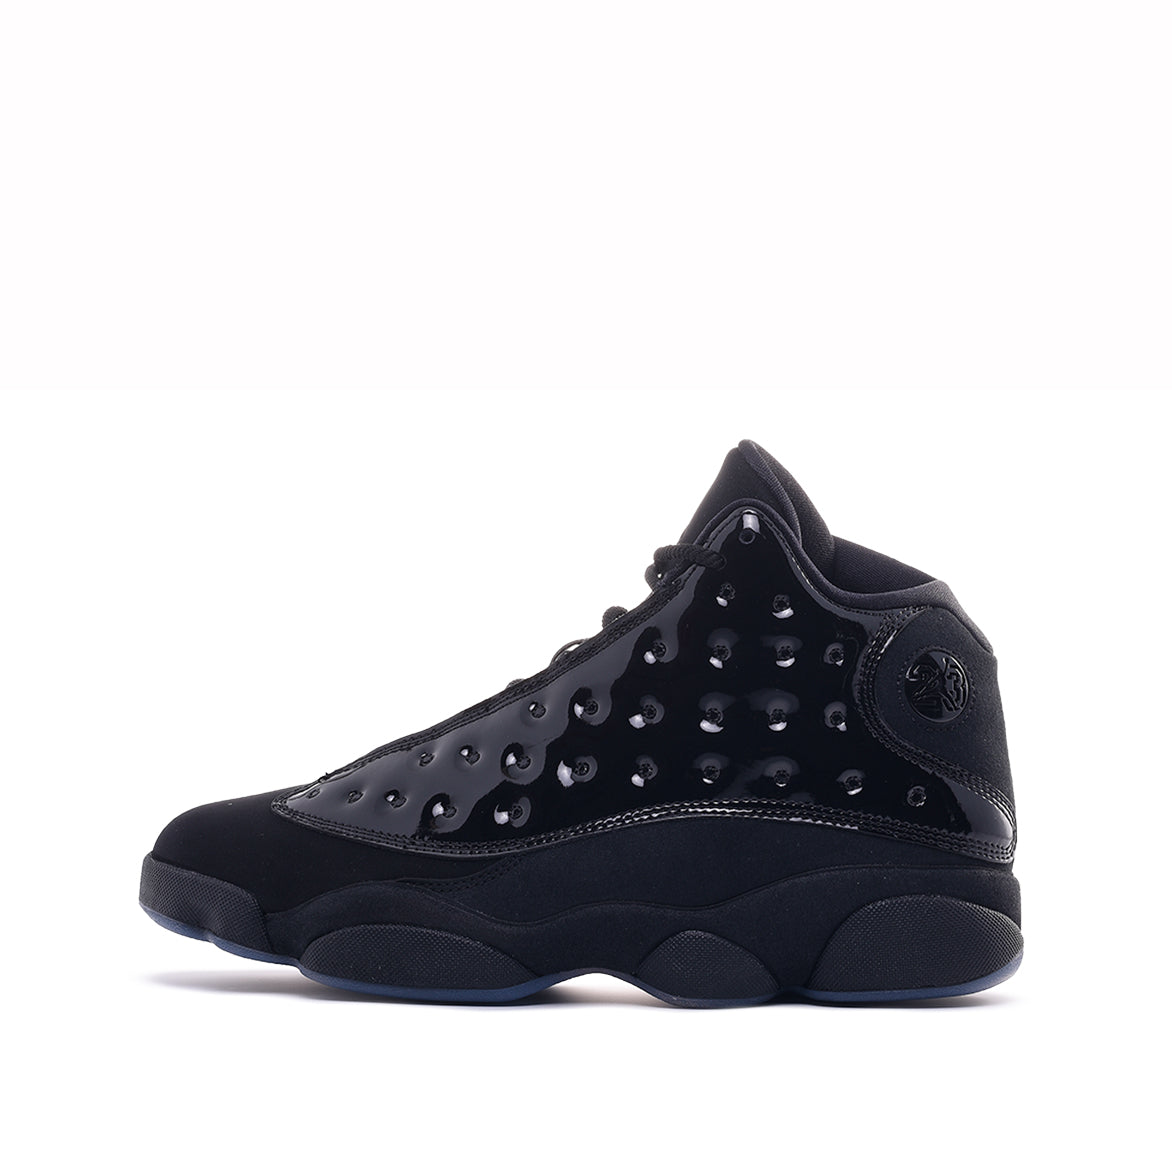 48d0729ddd34 AIR JORDAN 13 RETRO (GS)